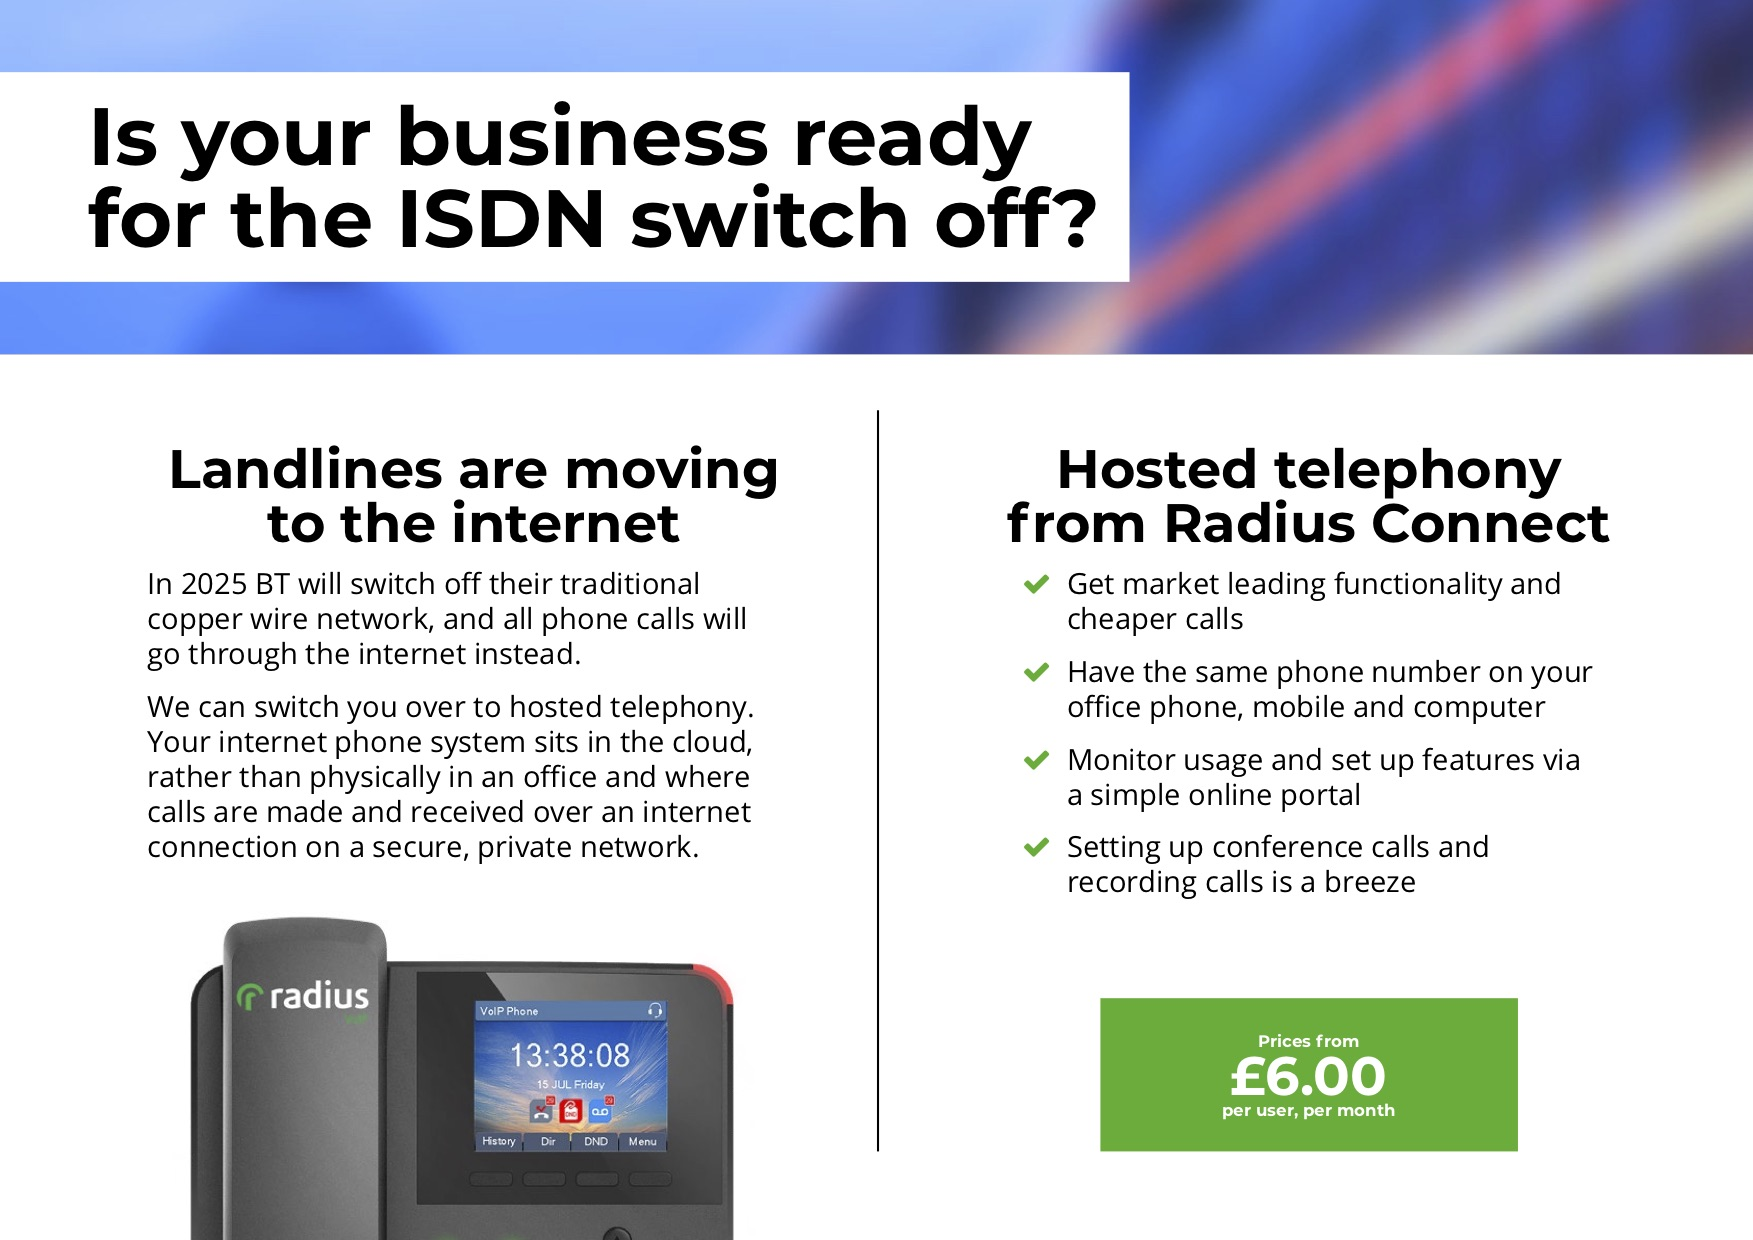 Hosted Telephony - Is your business ready for the ISDN switch off?